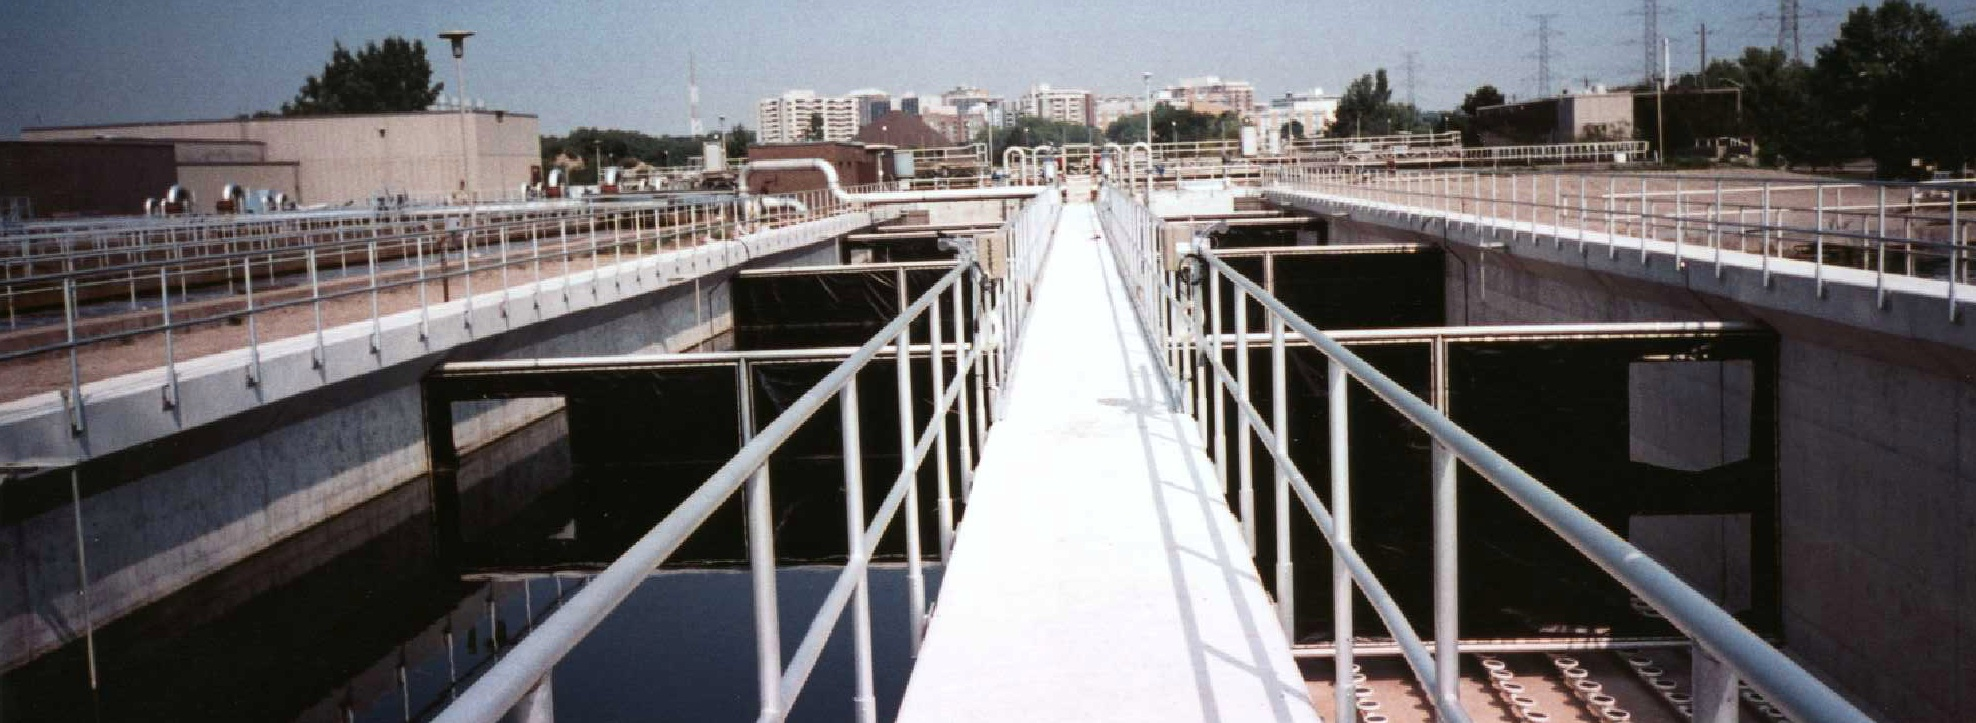 Burlington_Skyway_WWTP.jpg